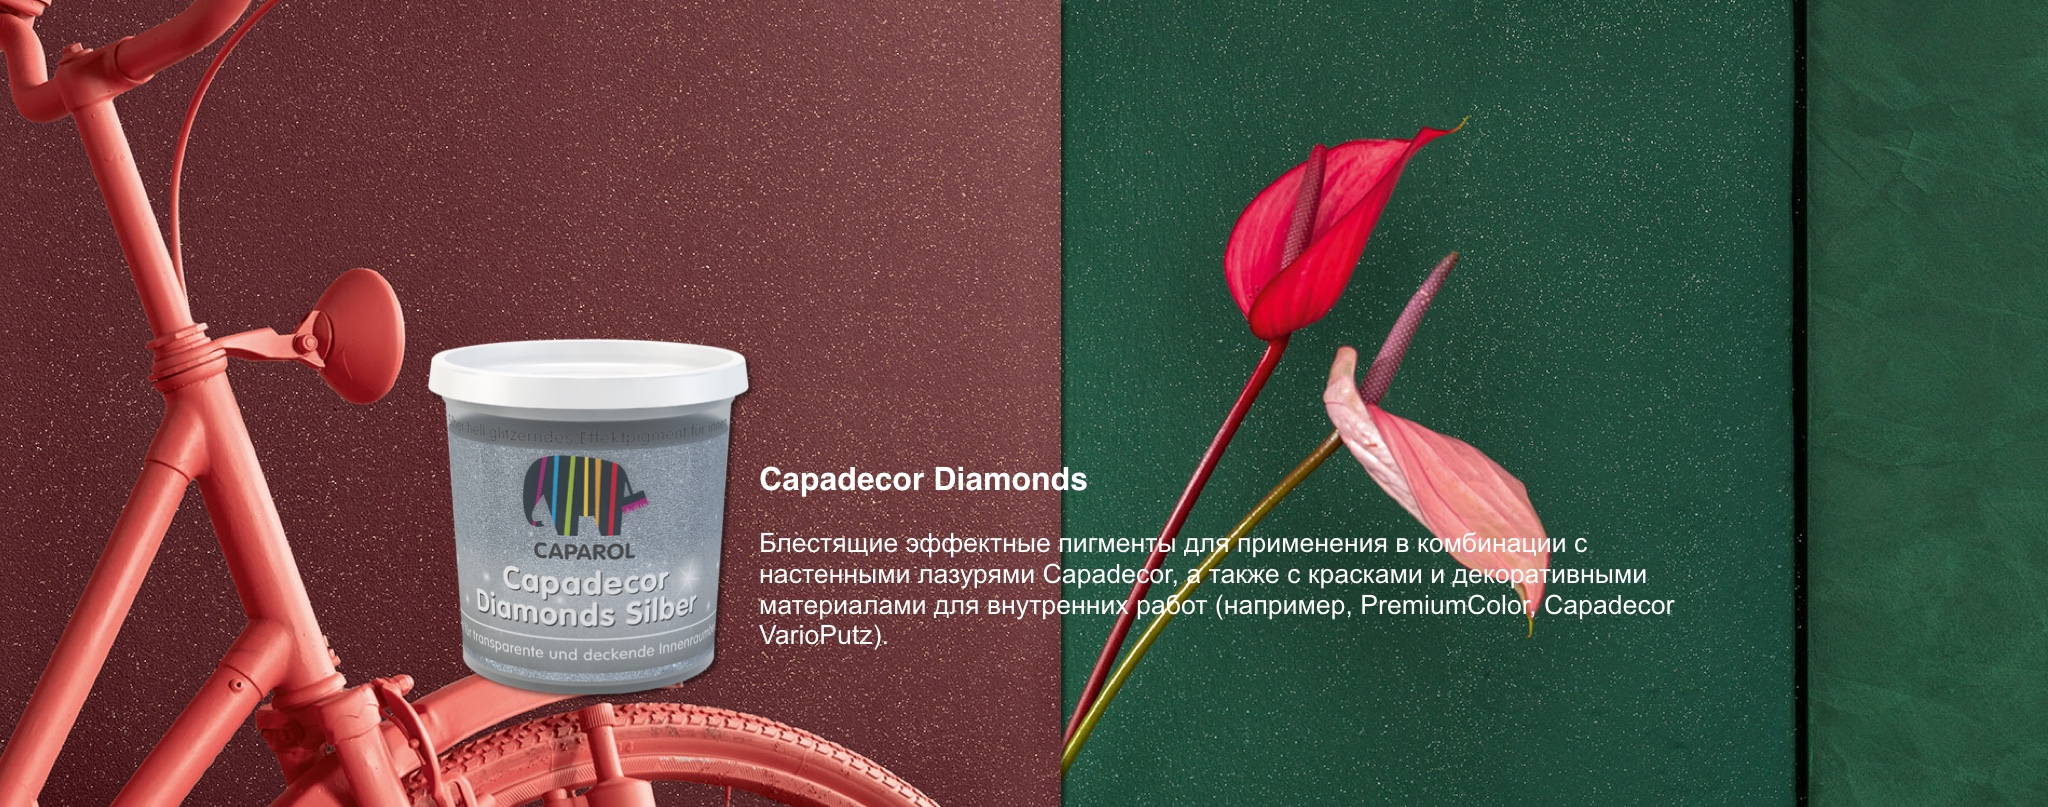 Caparol Capadecor Diamonds